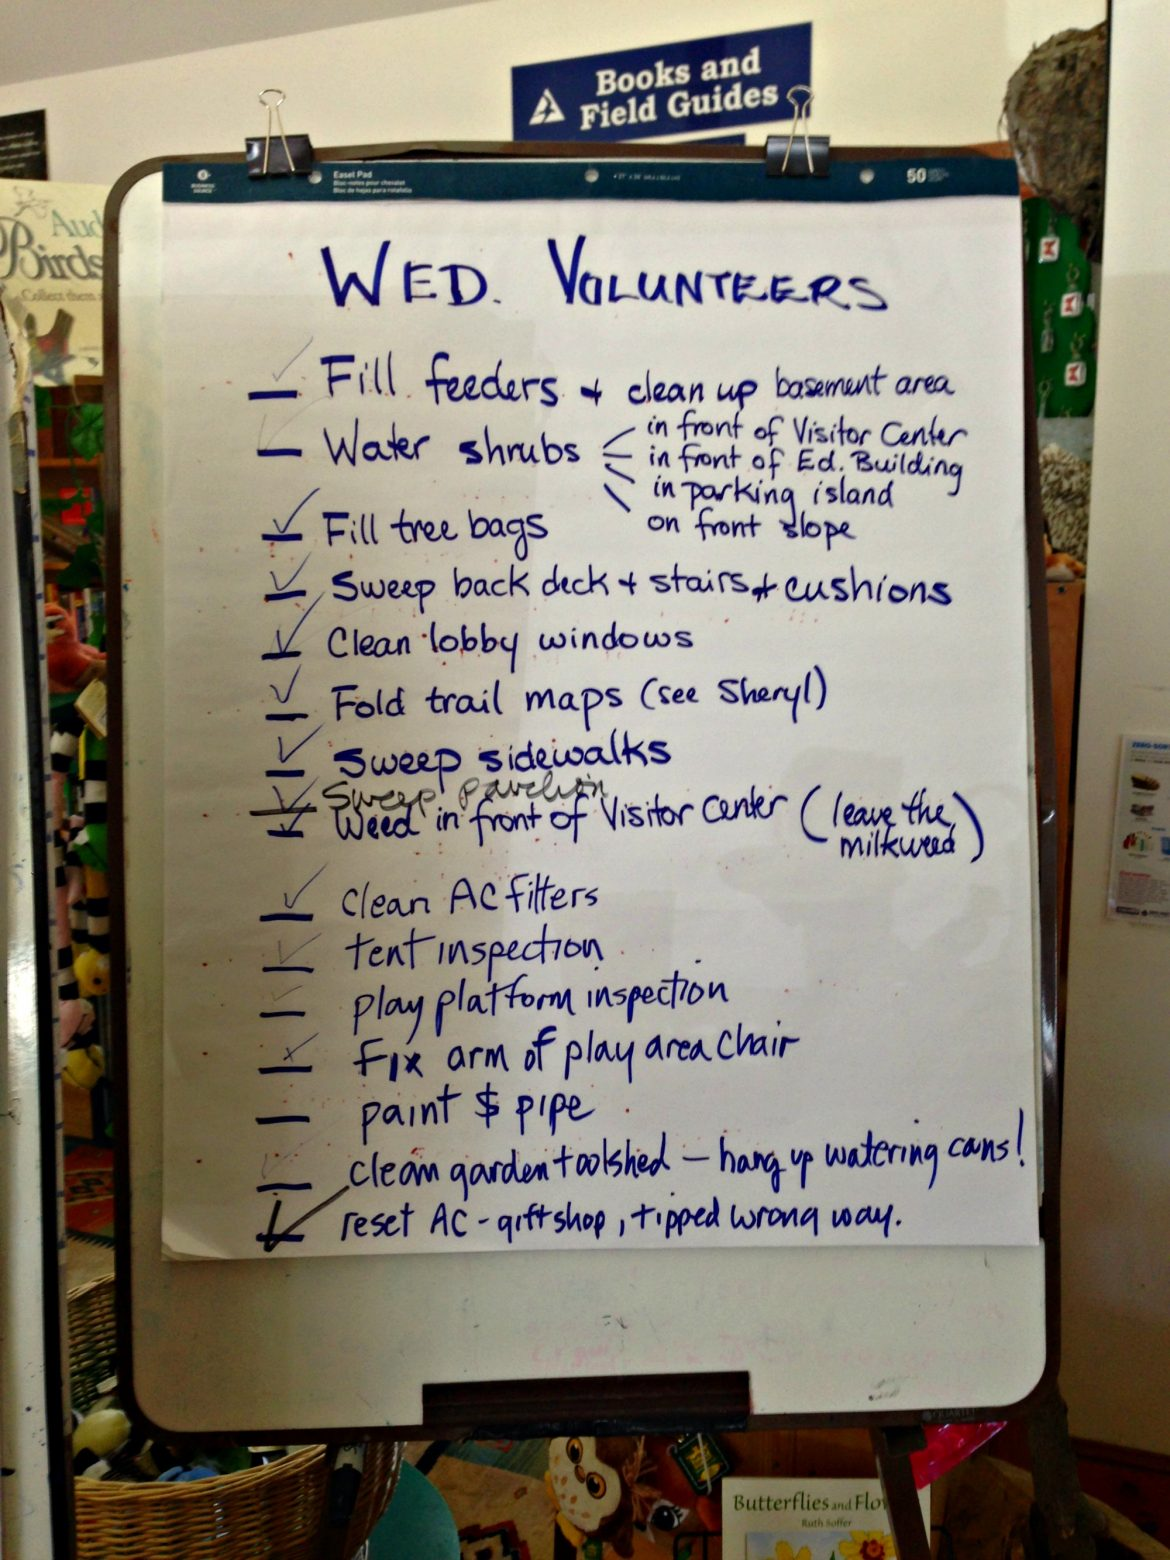 The volunteer board